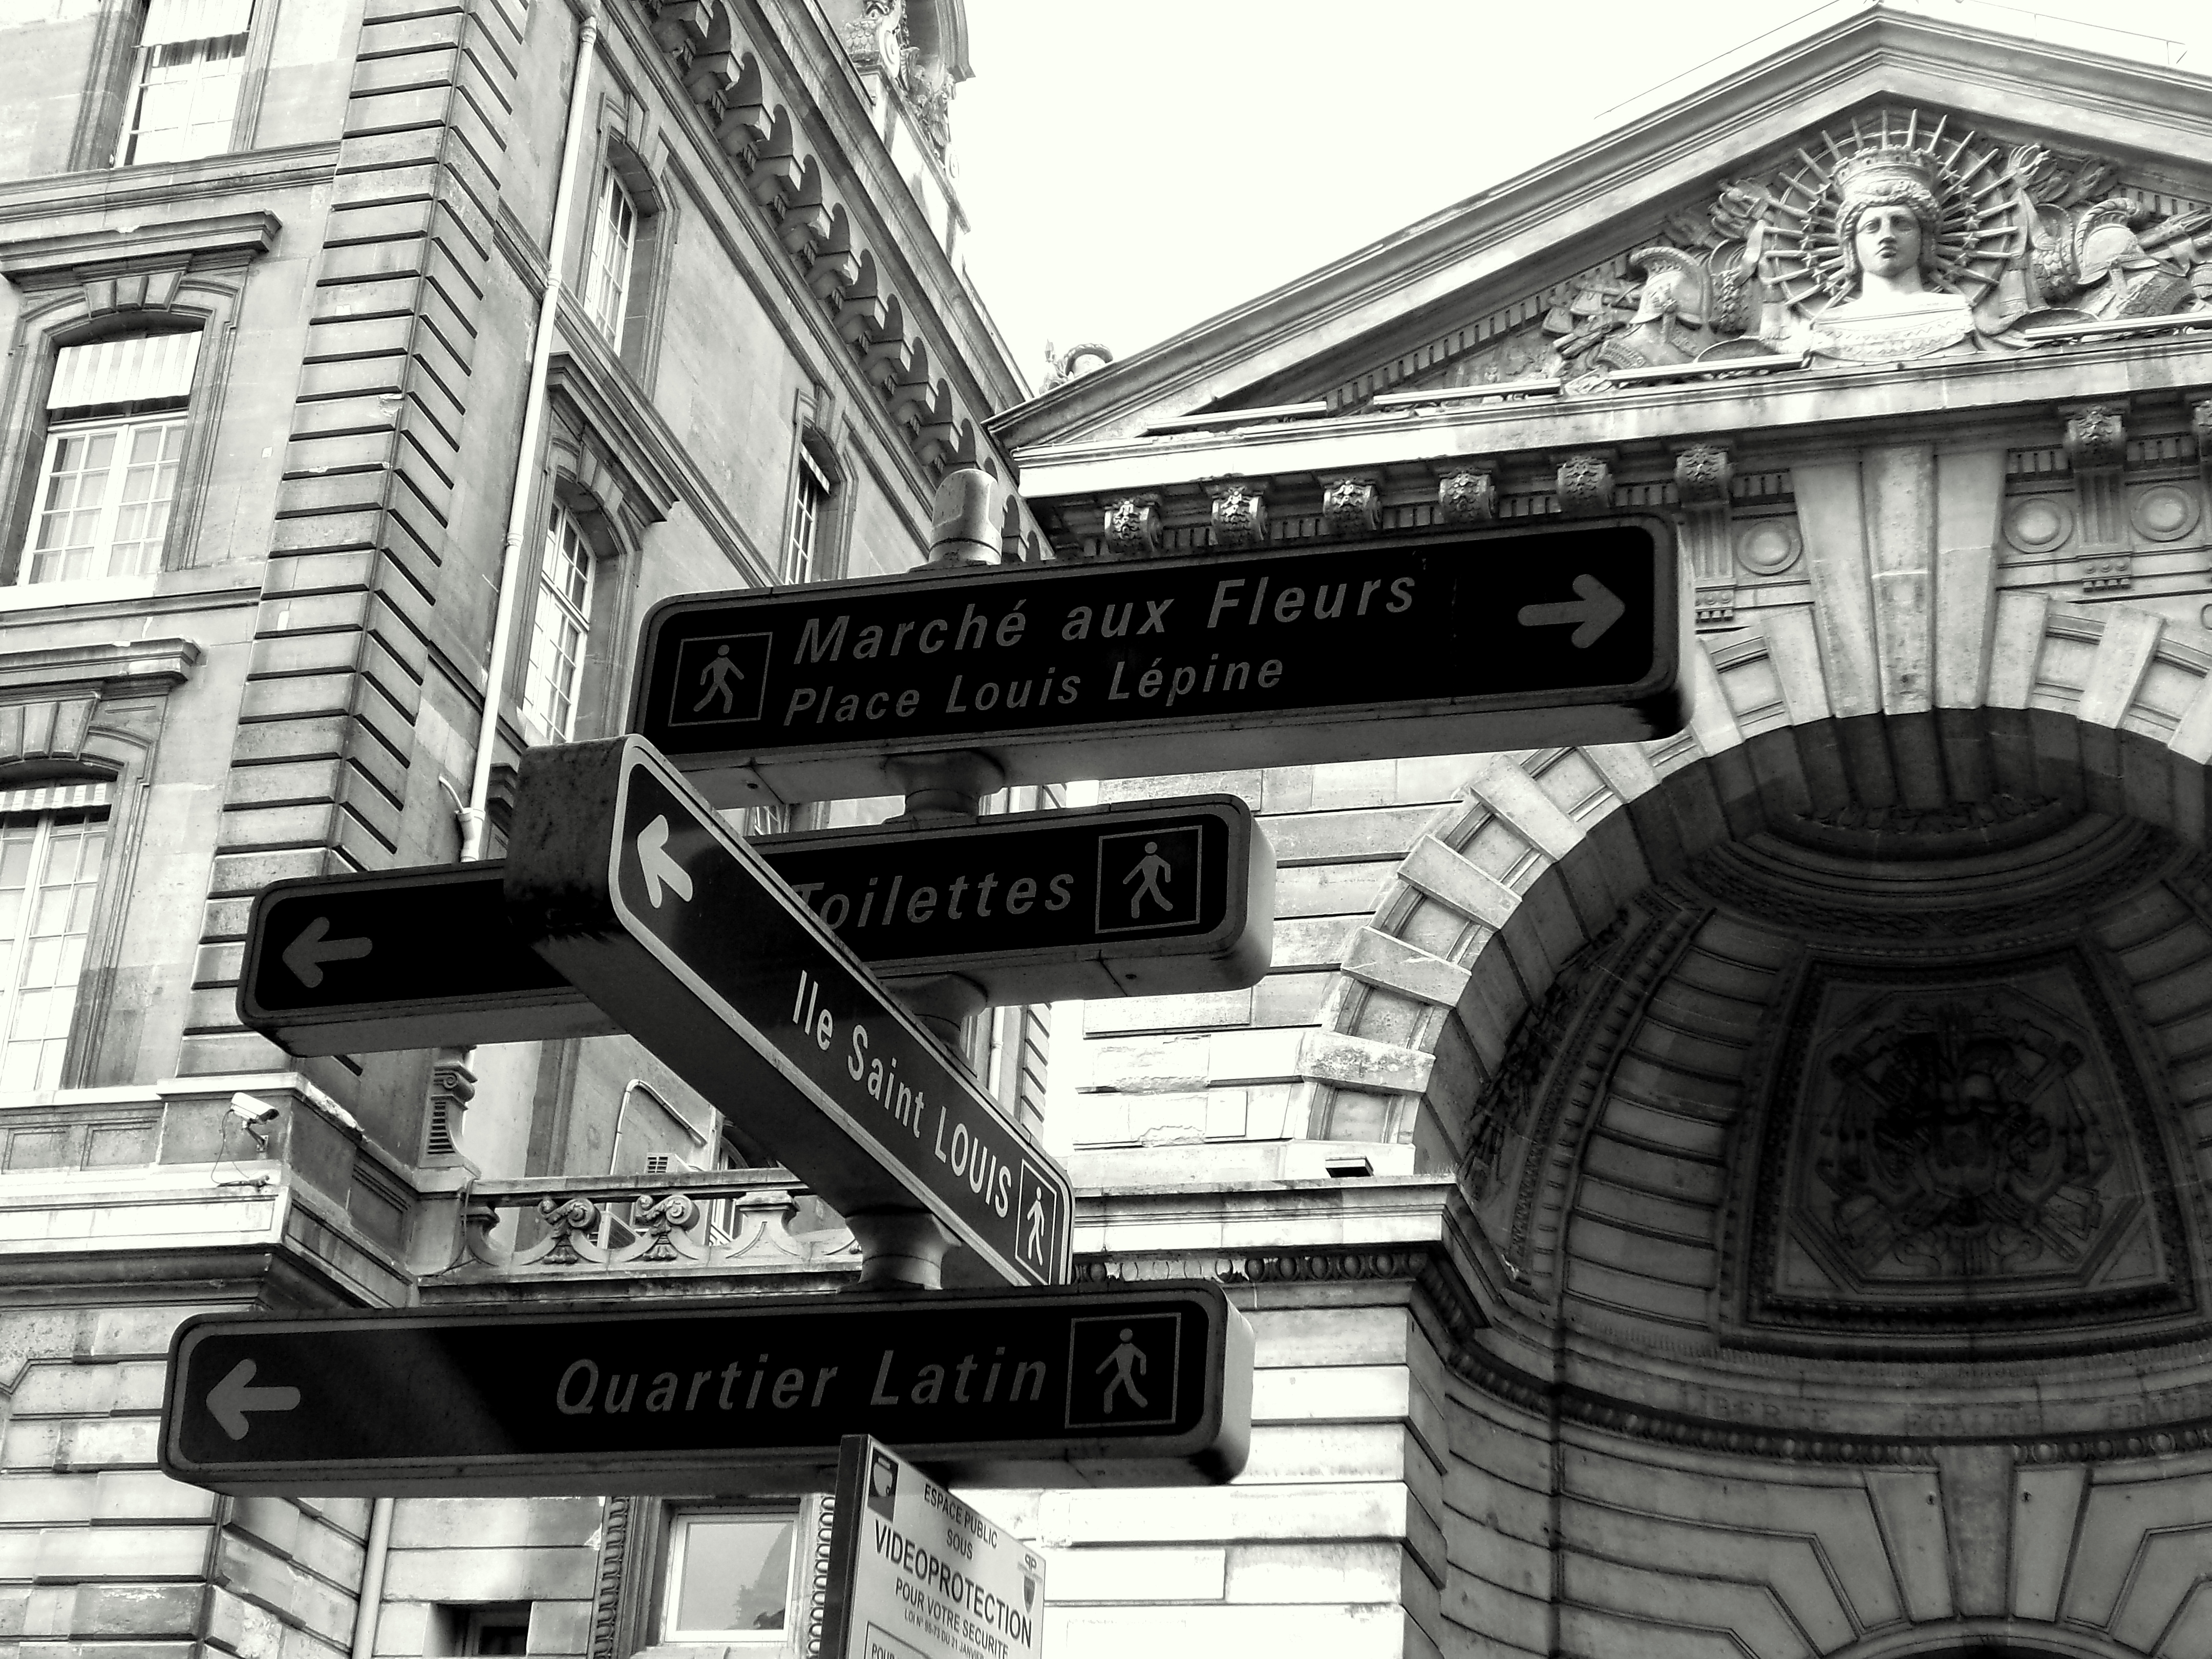 French street signs lol.